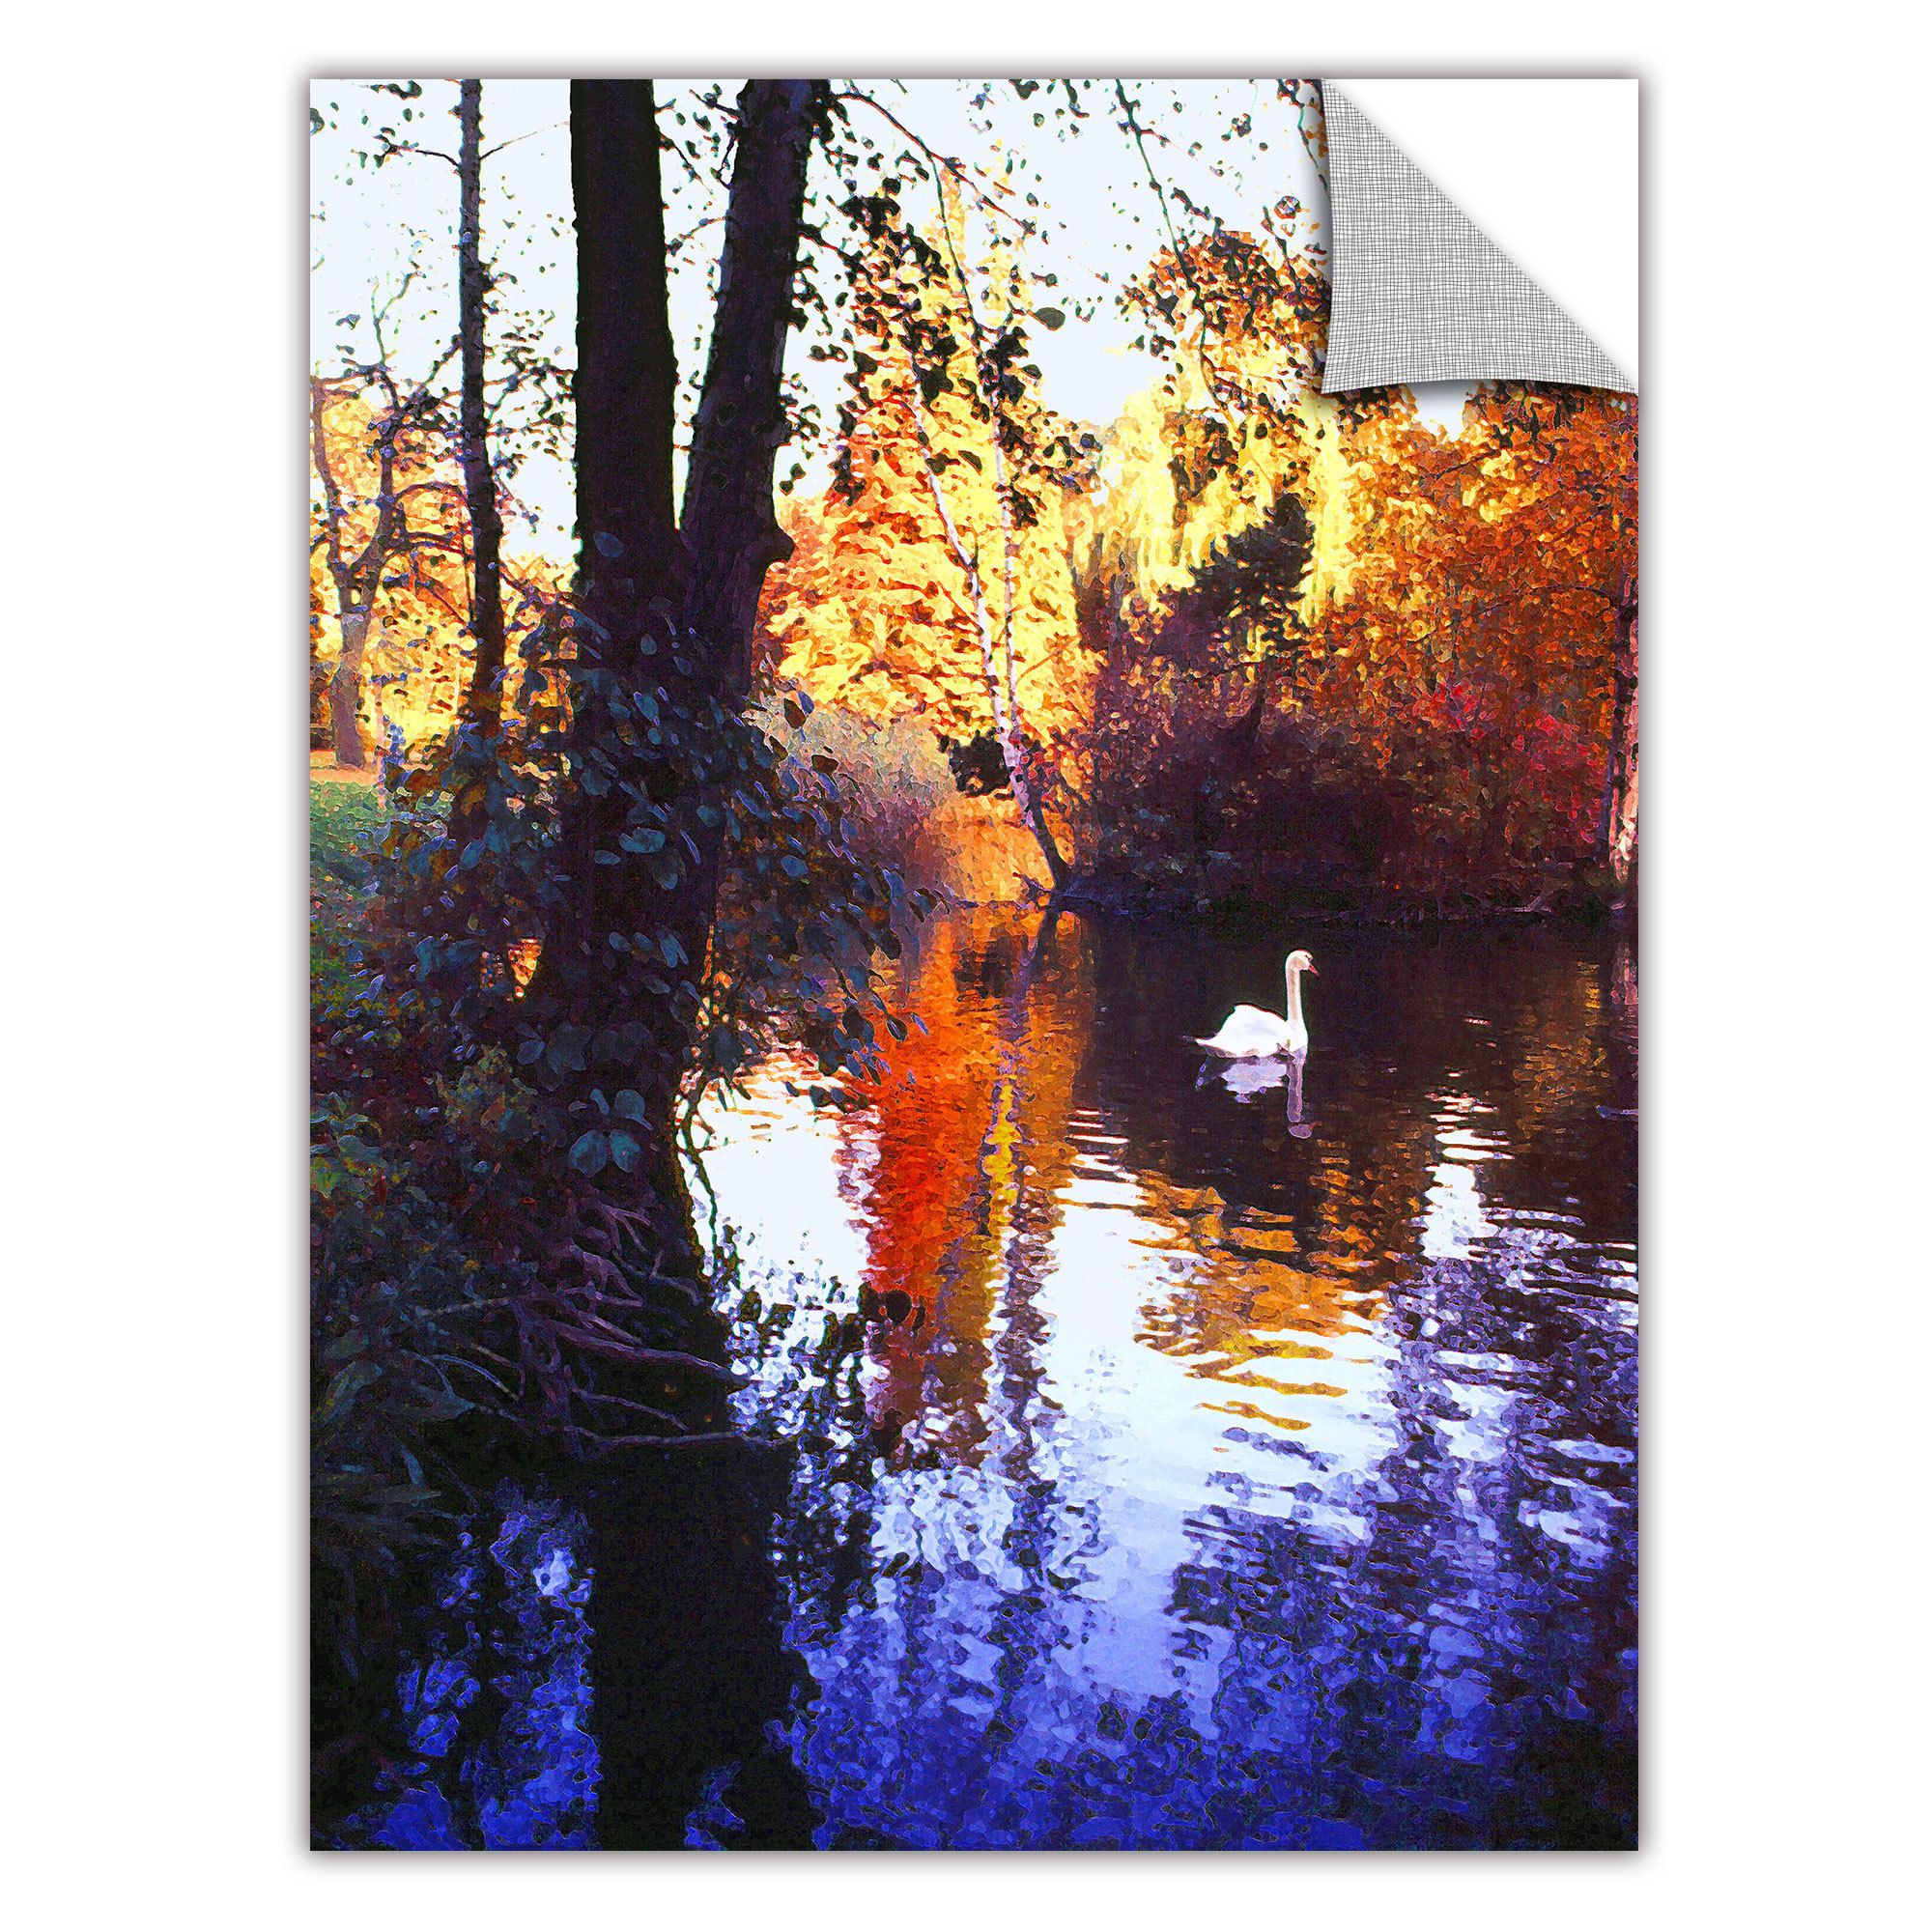 Removable wall art graphic - Artwall Dean Uhlinger Hamm Park Art Appeelz Removable Wall Art Graphic 14x18